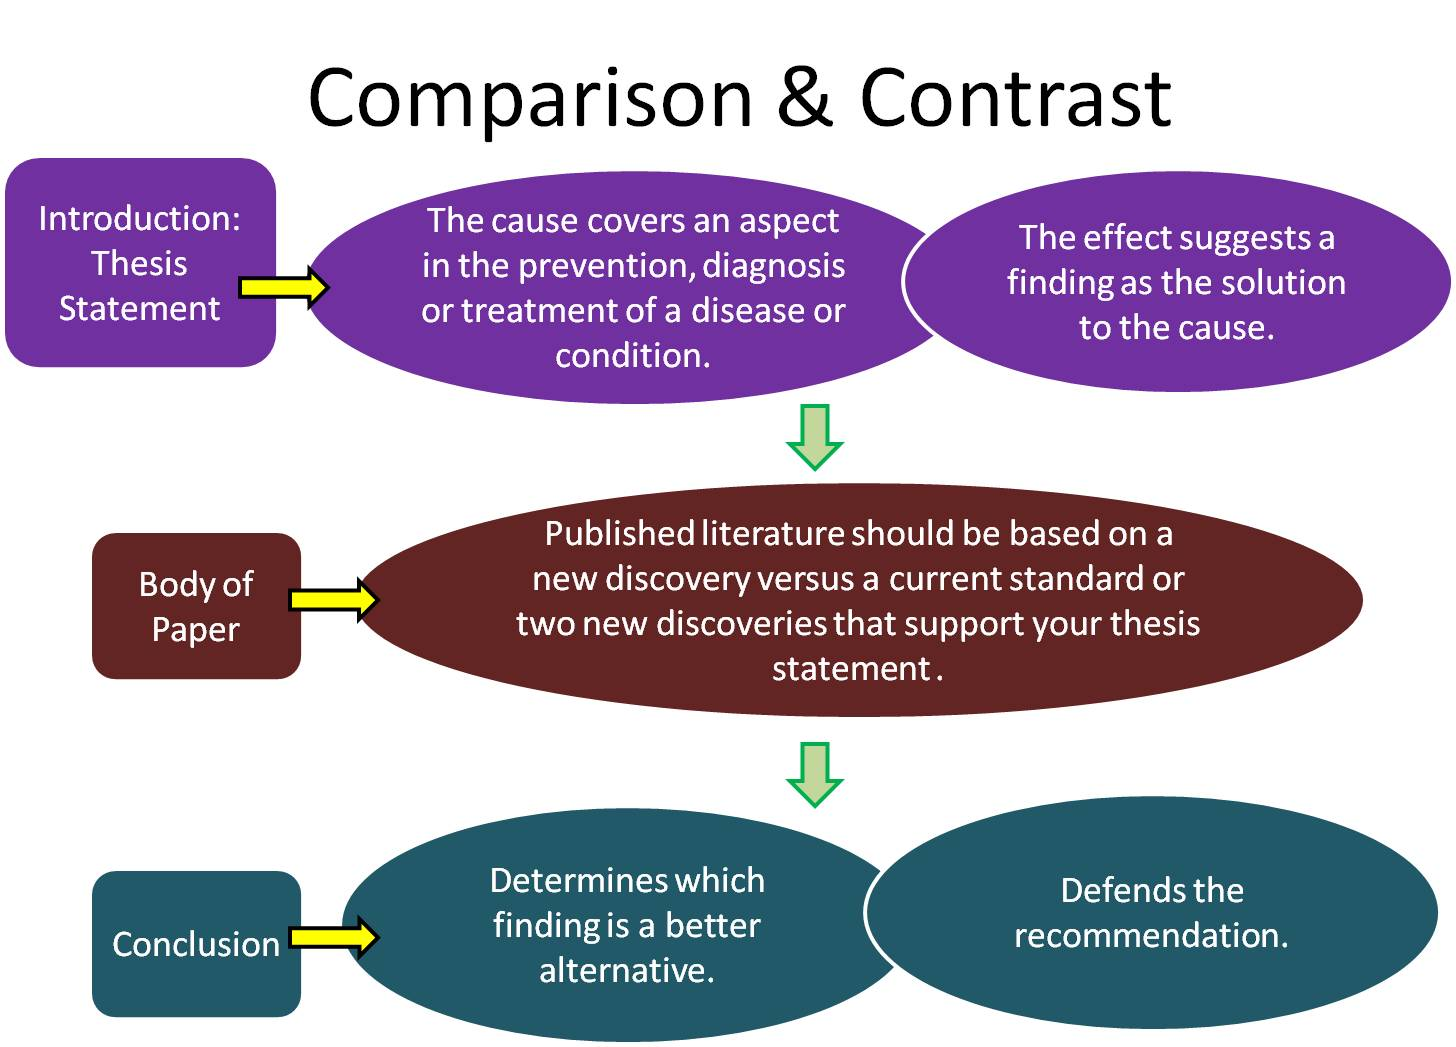 writing thesis statement comparative essay Comparative essay thesis statement - benefit from our cheap custom essay writing services and benefit from perfect quality confide your paper to qualified writers.